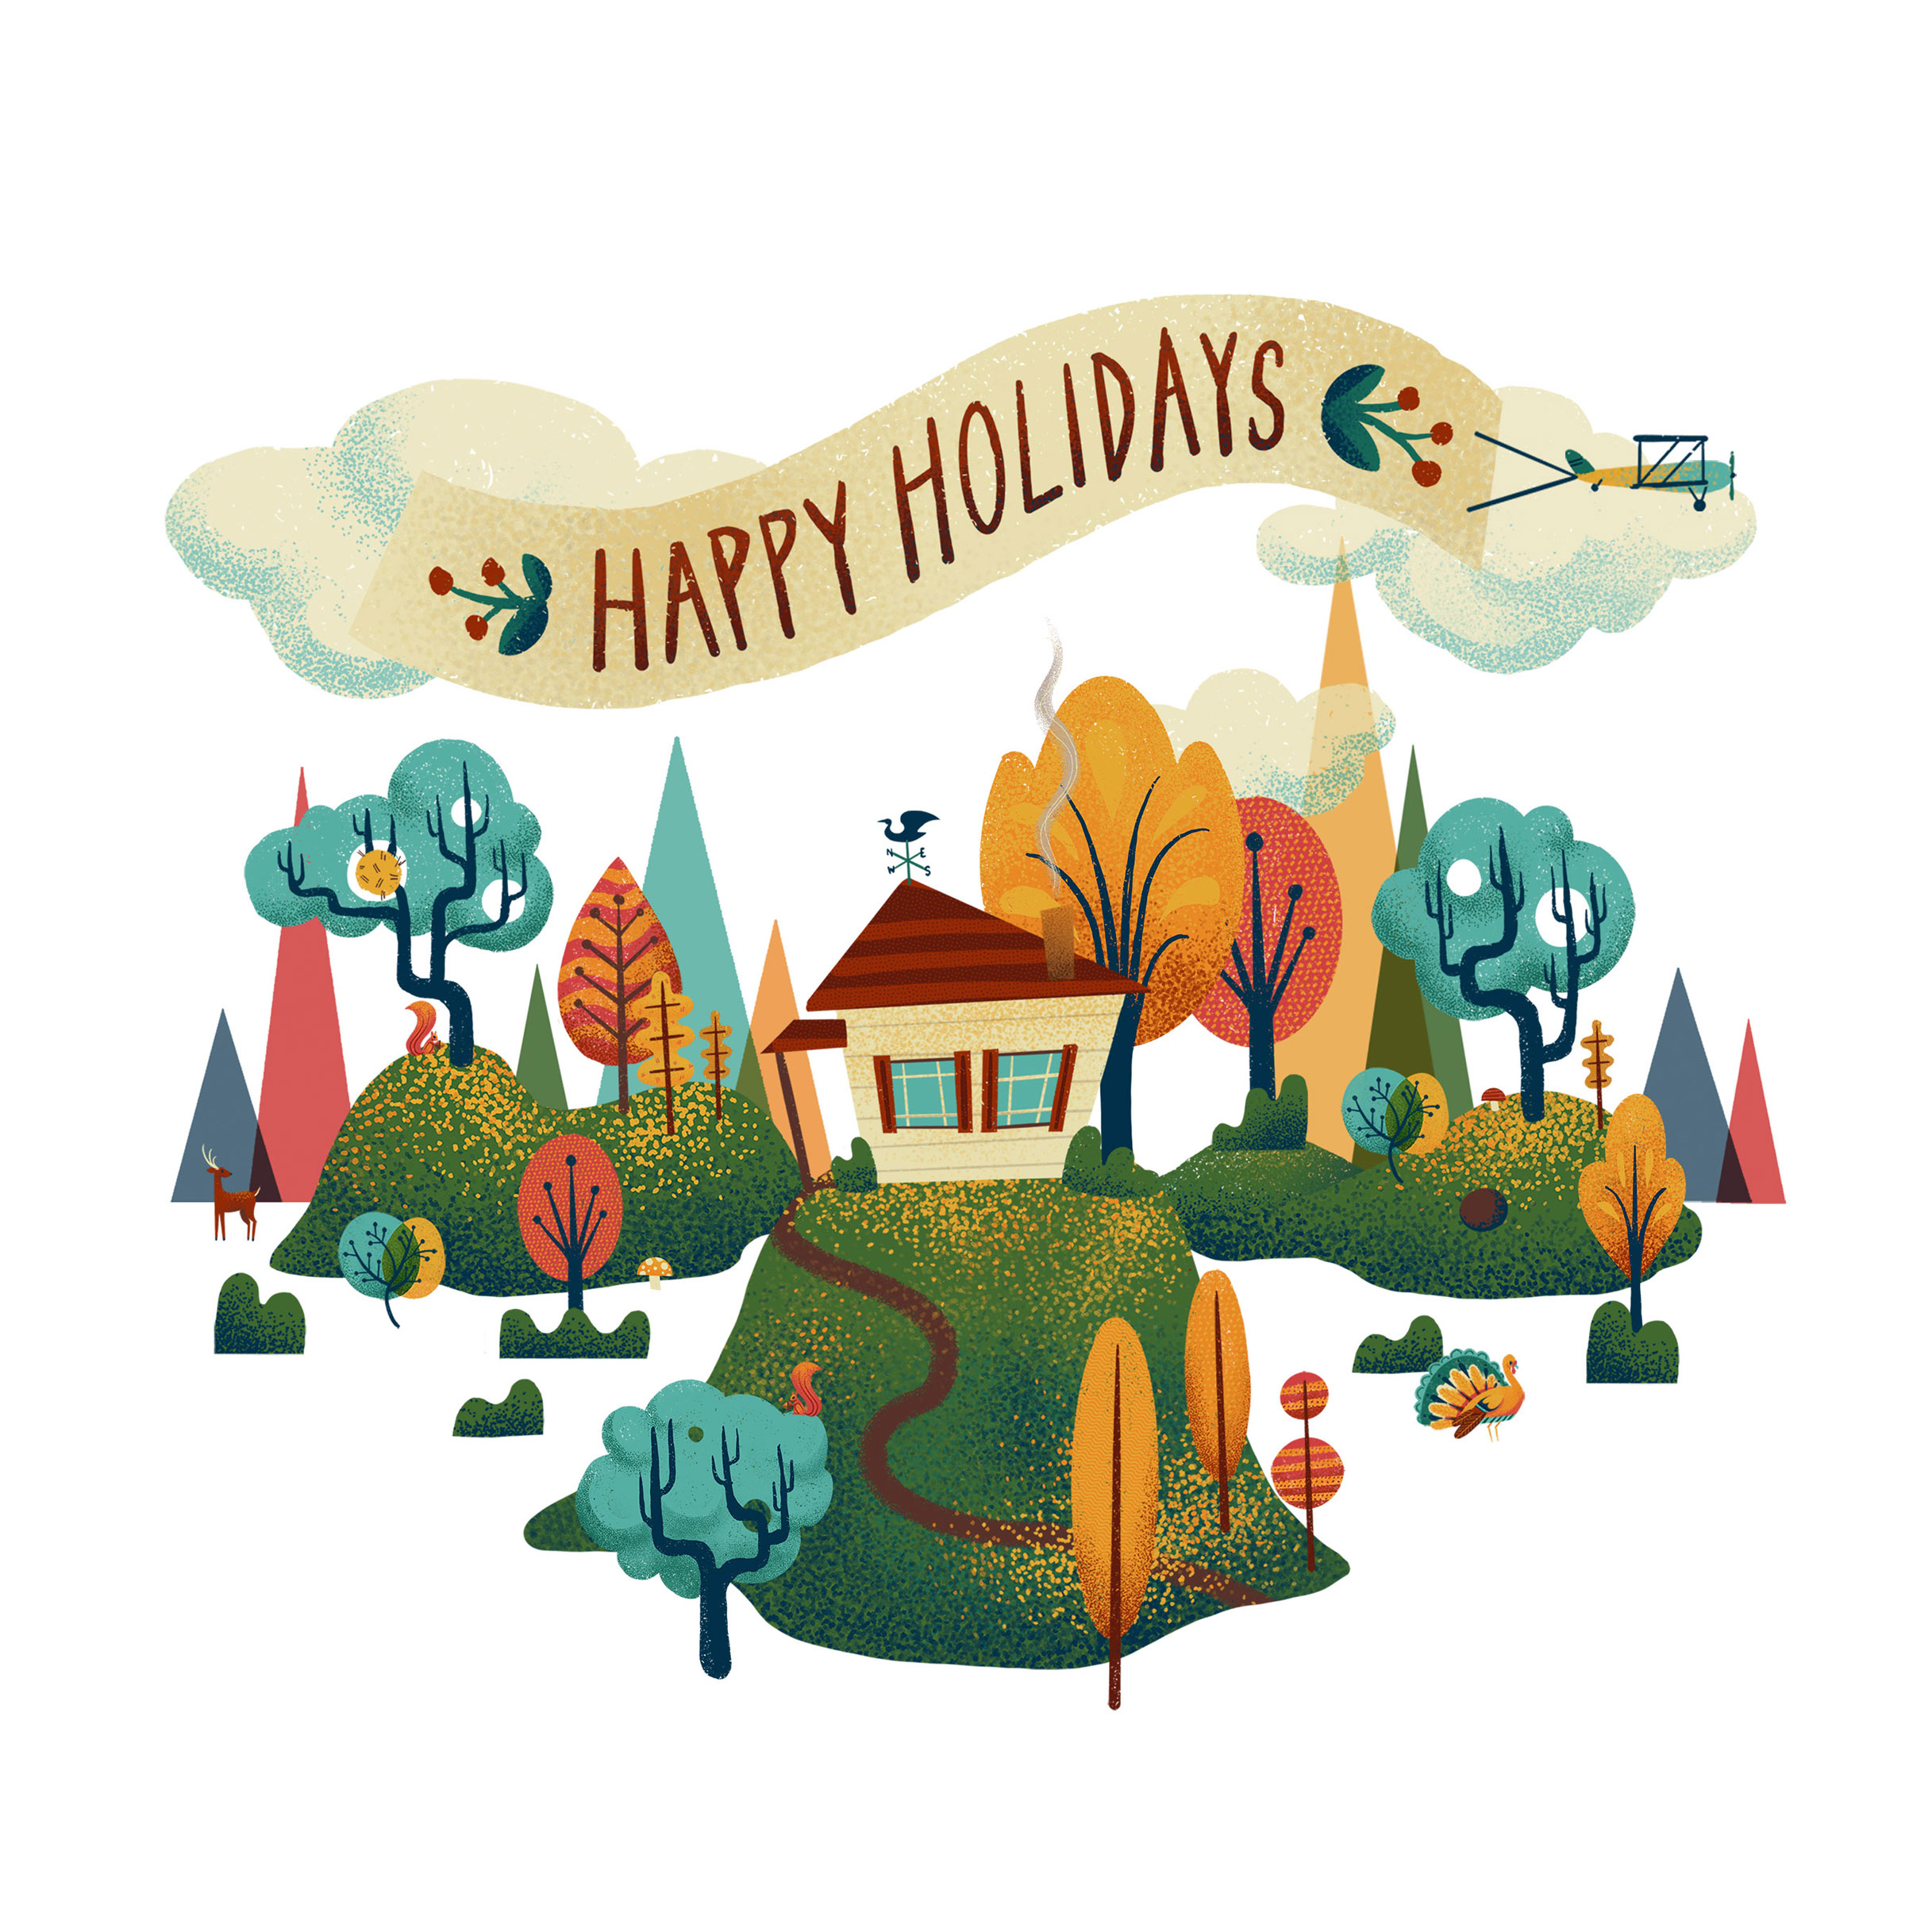 AR Holiday Card by Dunaway Smith